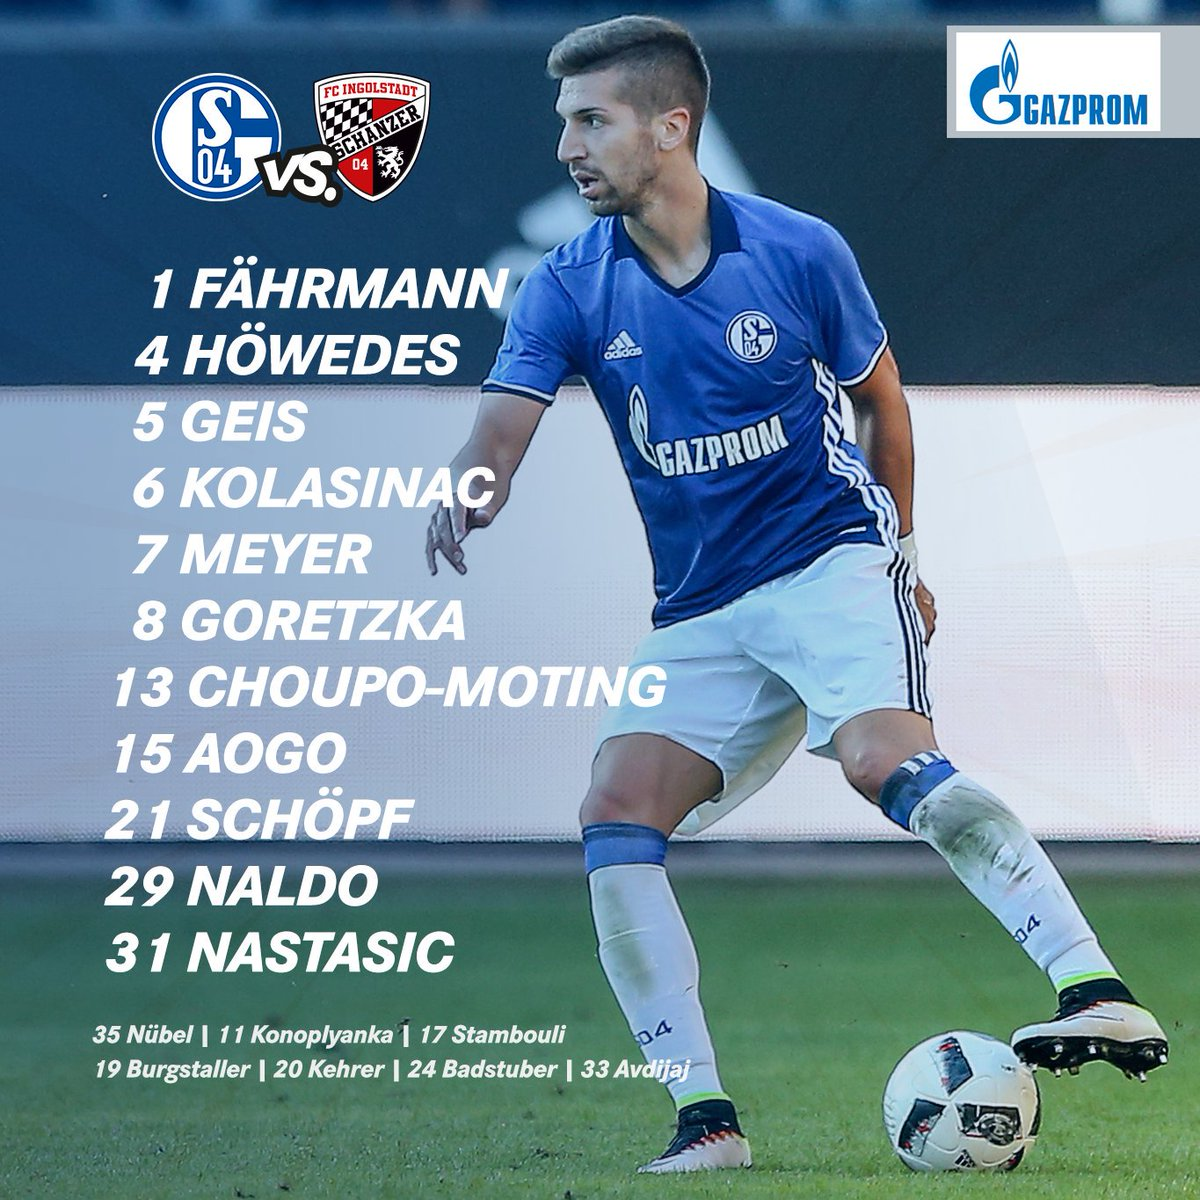 It's that time again at last... here's our starting 1️⃣1️⃣ for #S04FCI...